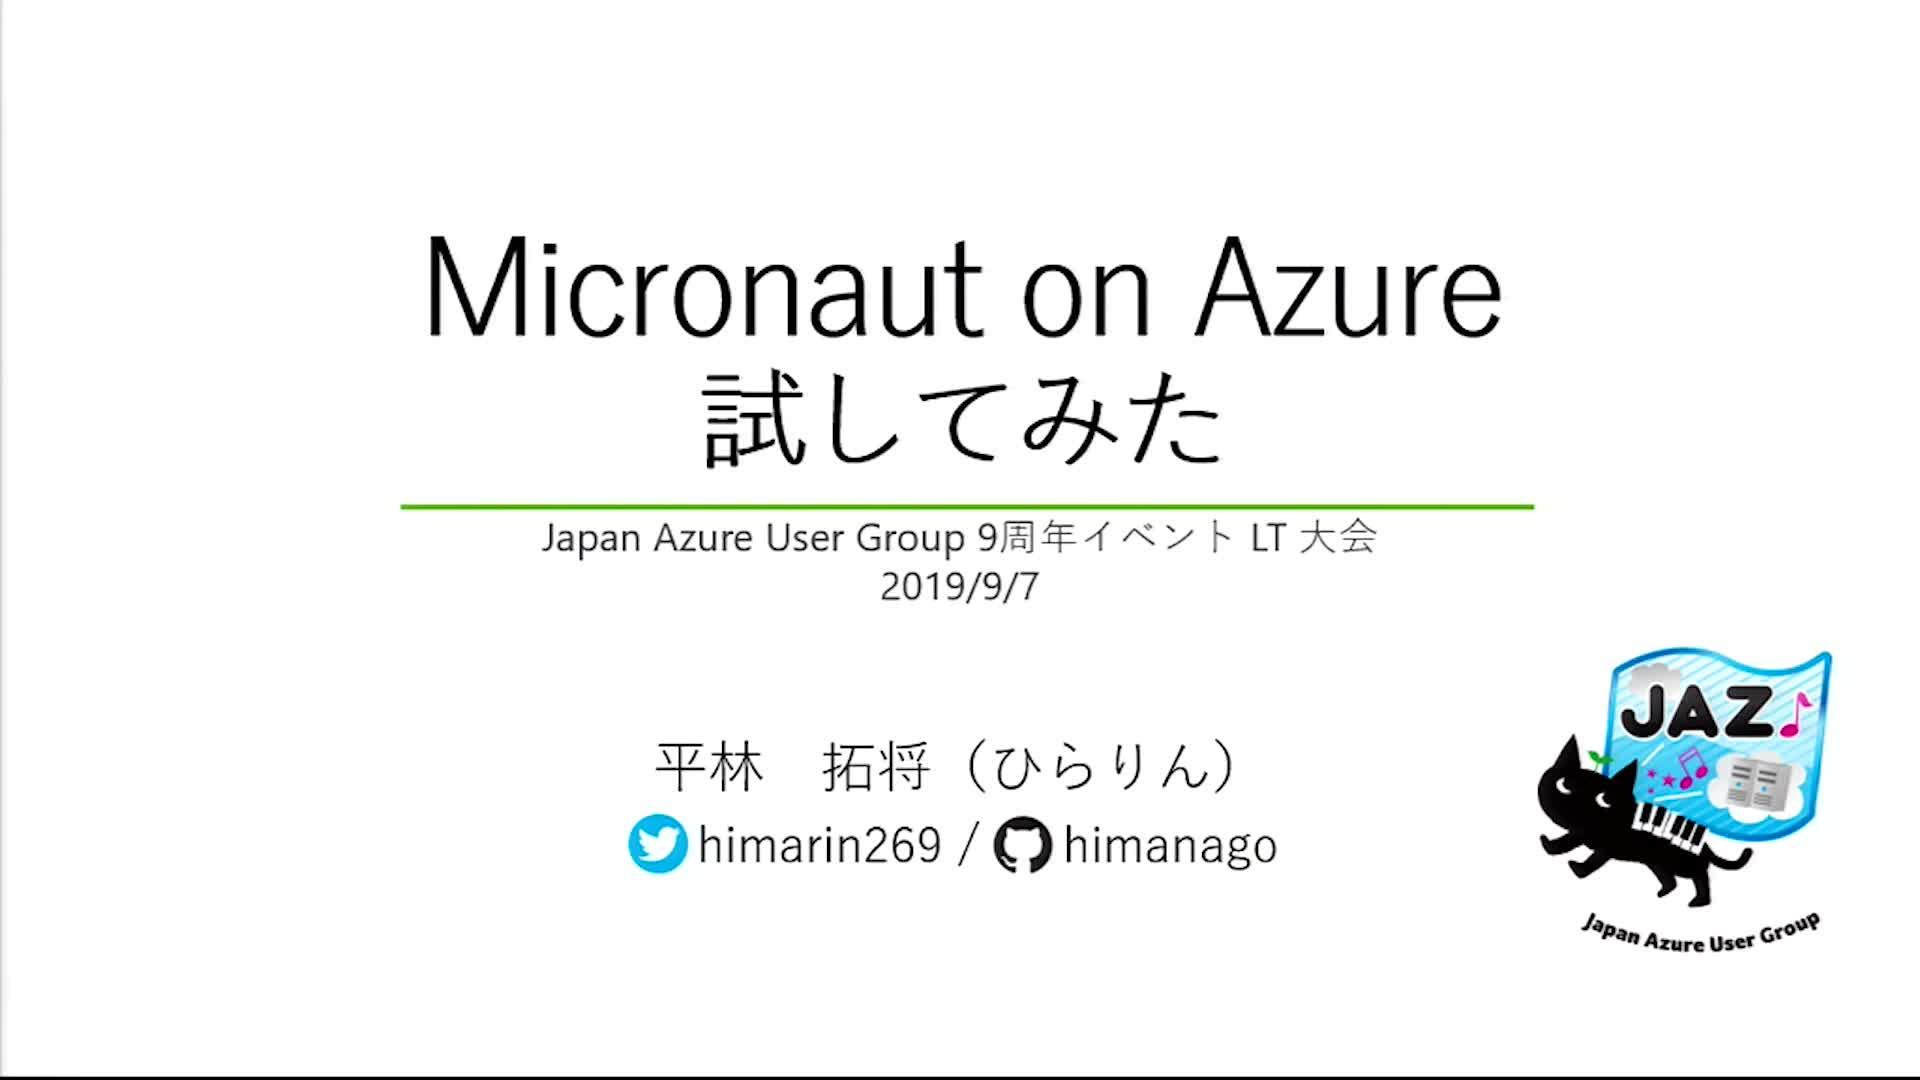 Micronaut on Azure試してみた